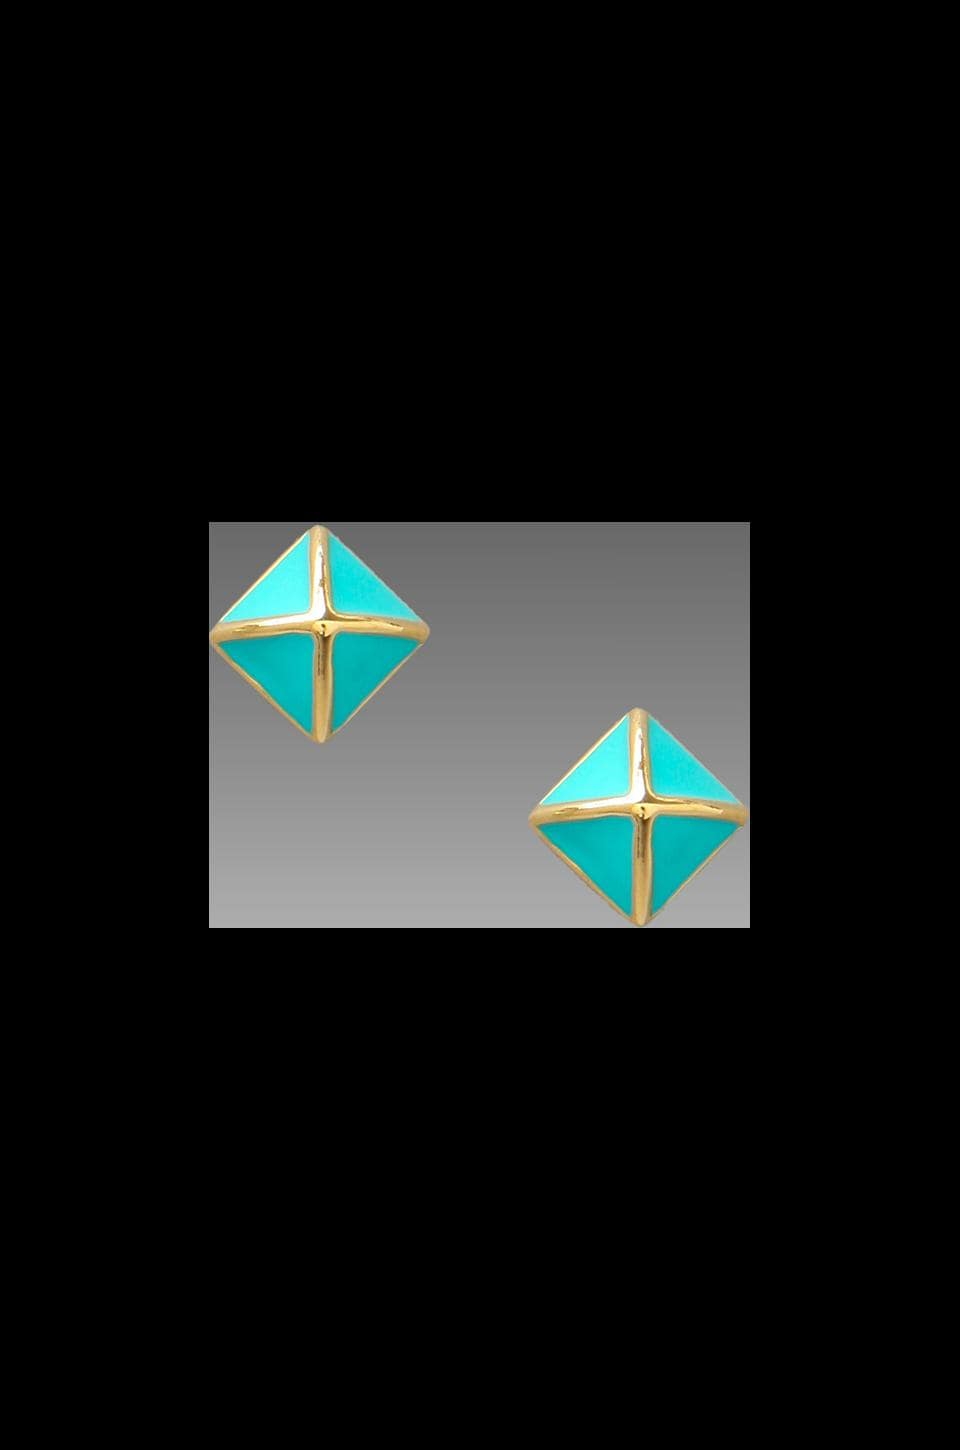 Rebecca Minkoff Small Enamel Stud Earring in Gold/Turquoise